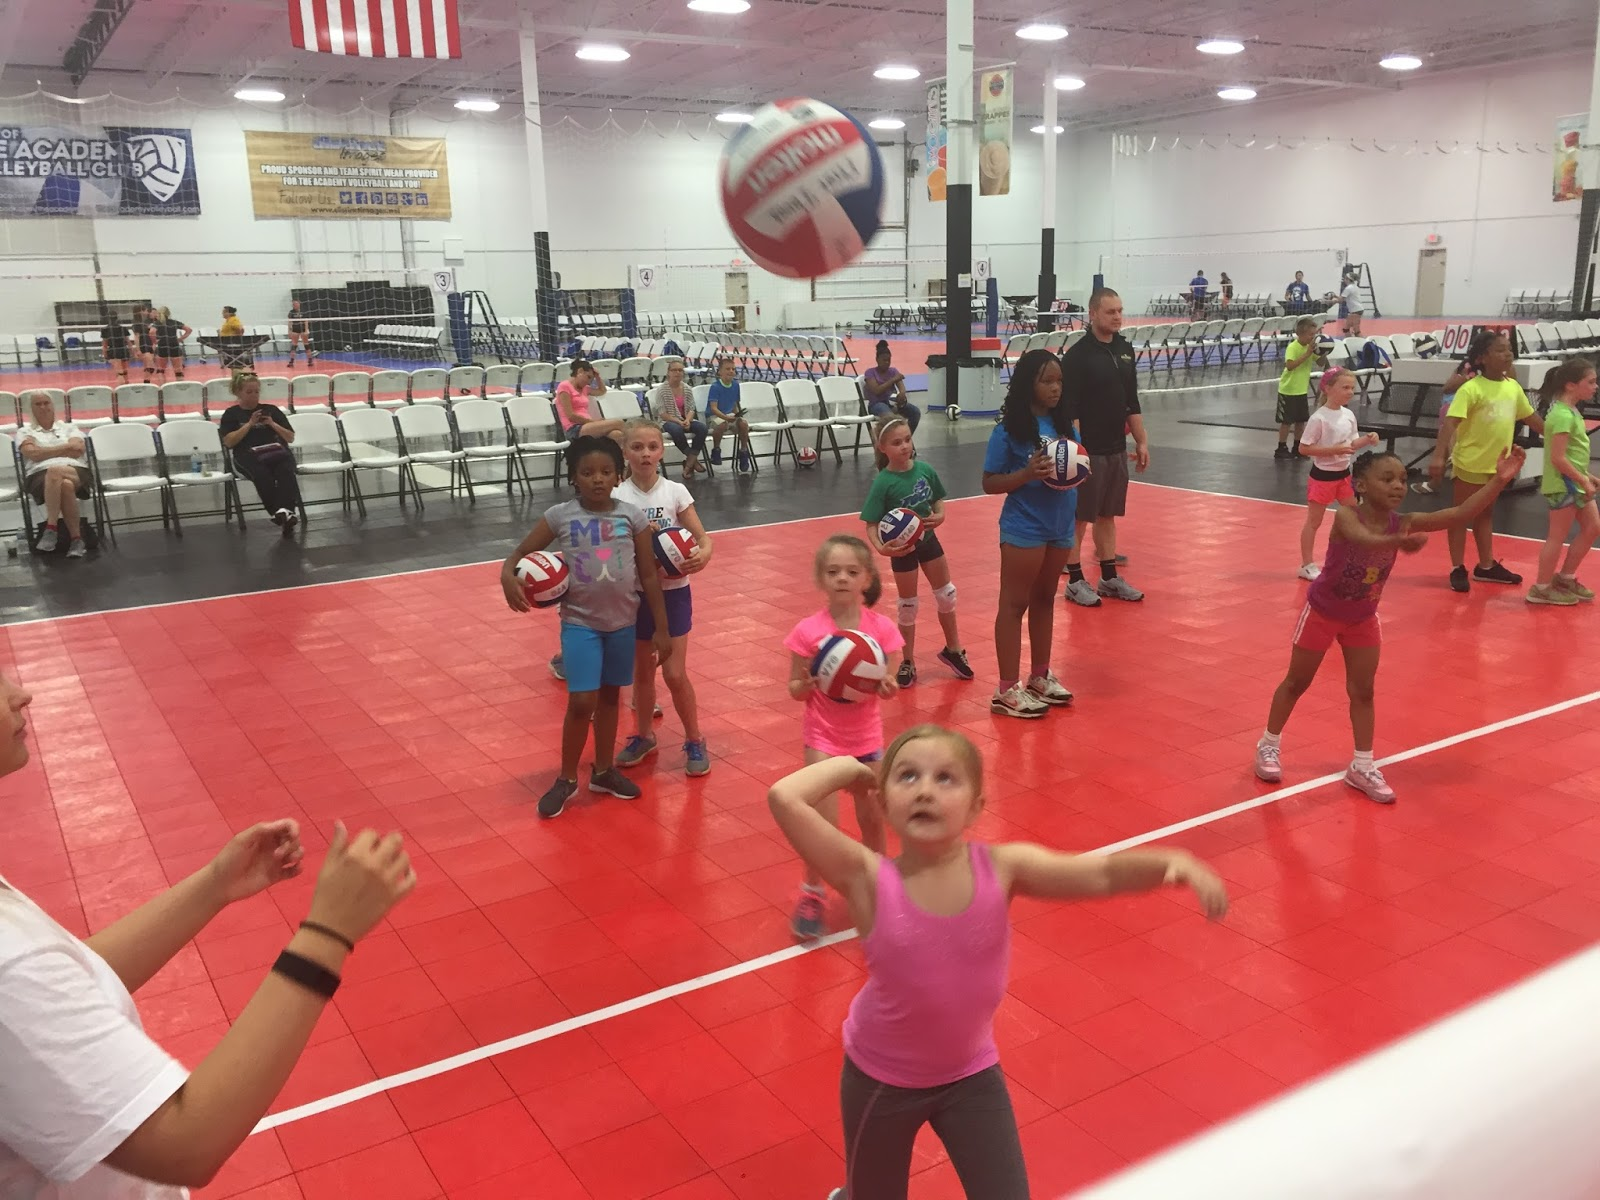 The volleyball facility blog tuesday june 16 2015 malvernweather Image collections